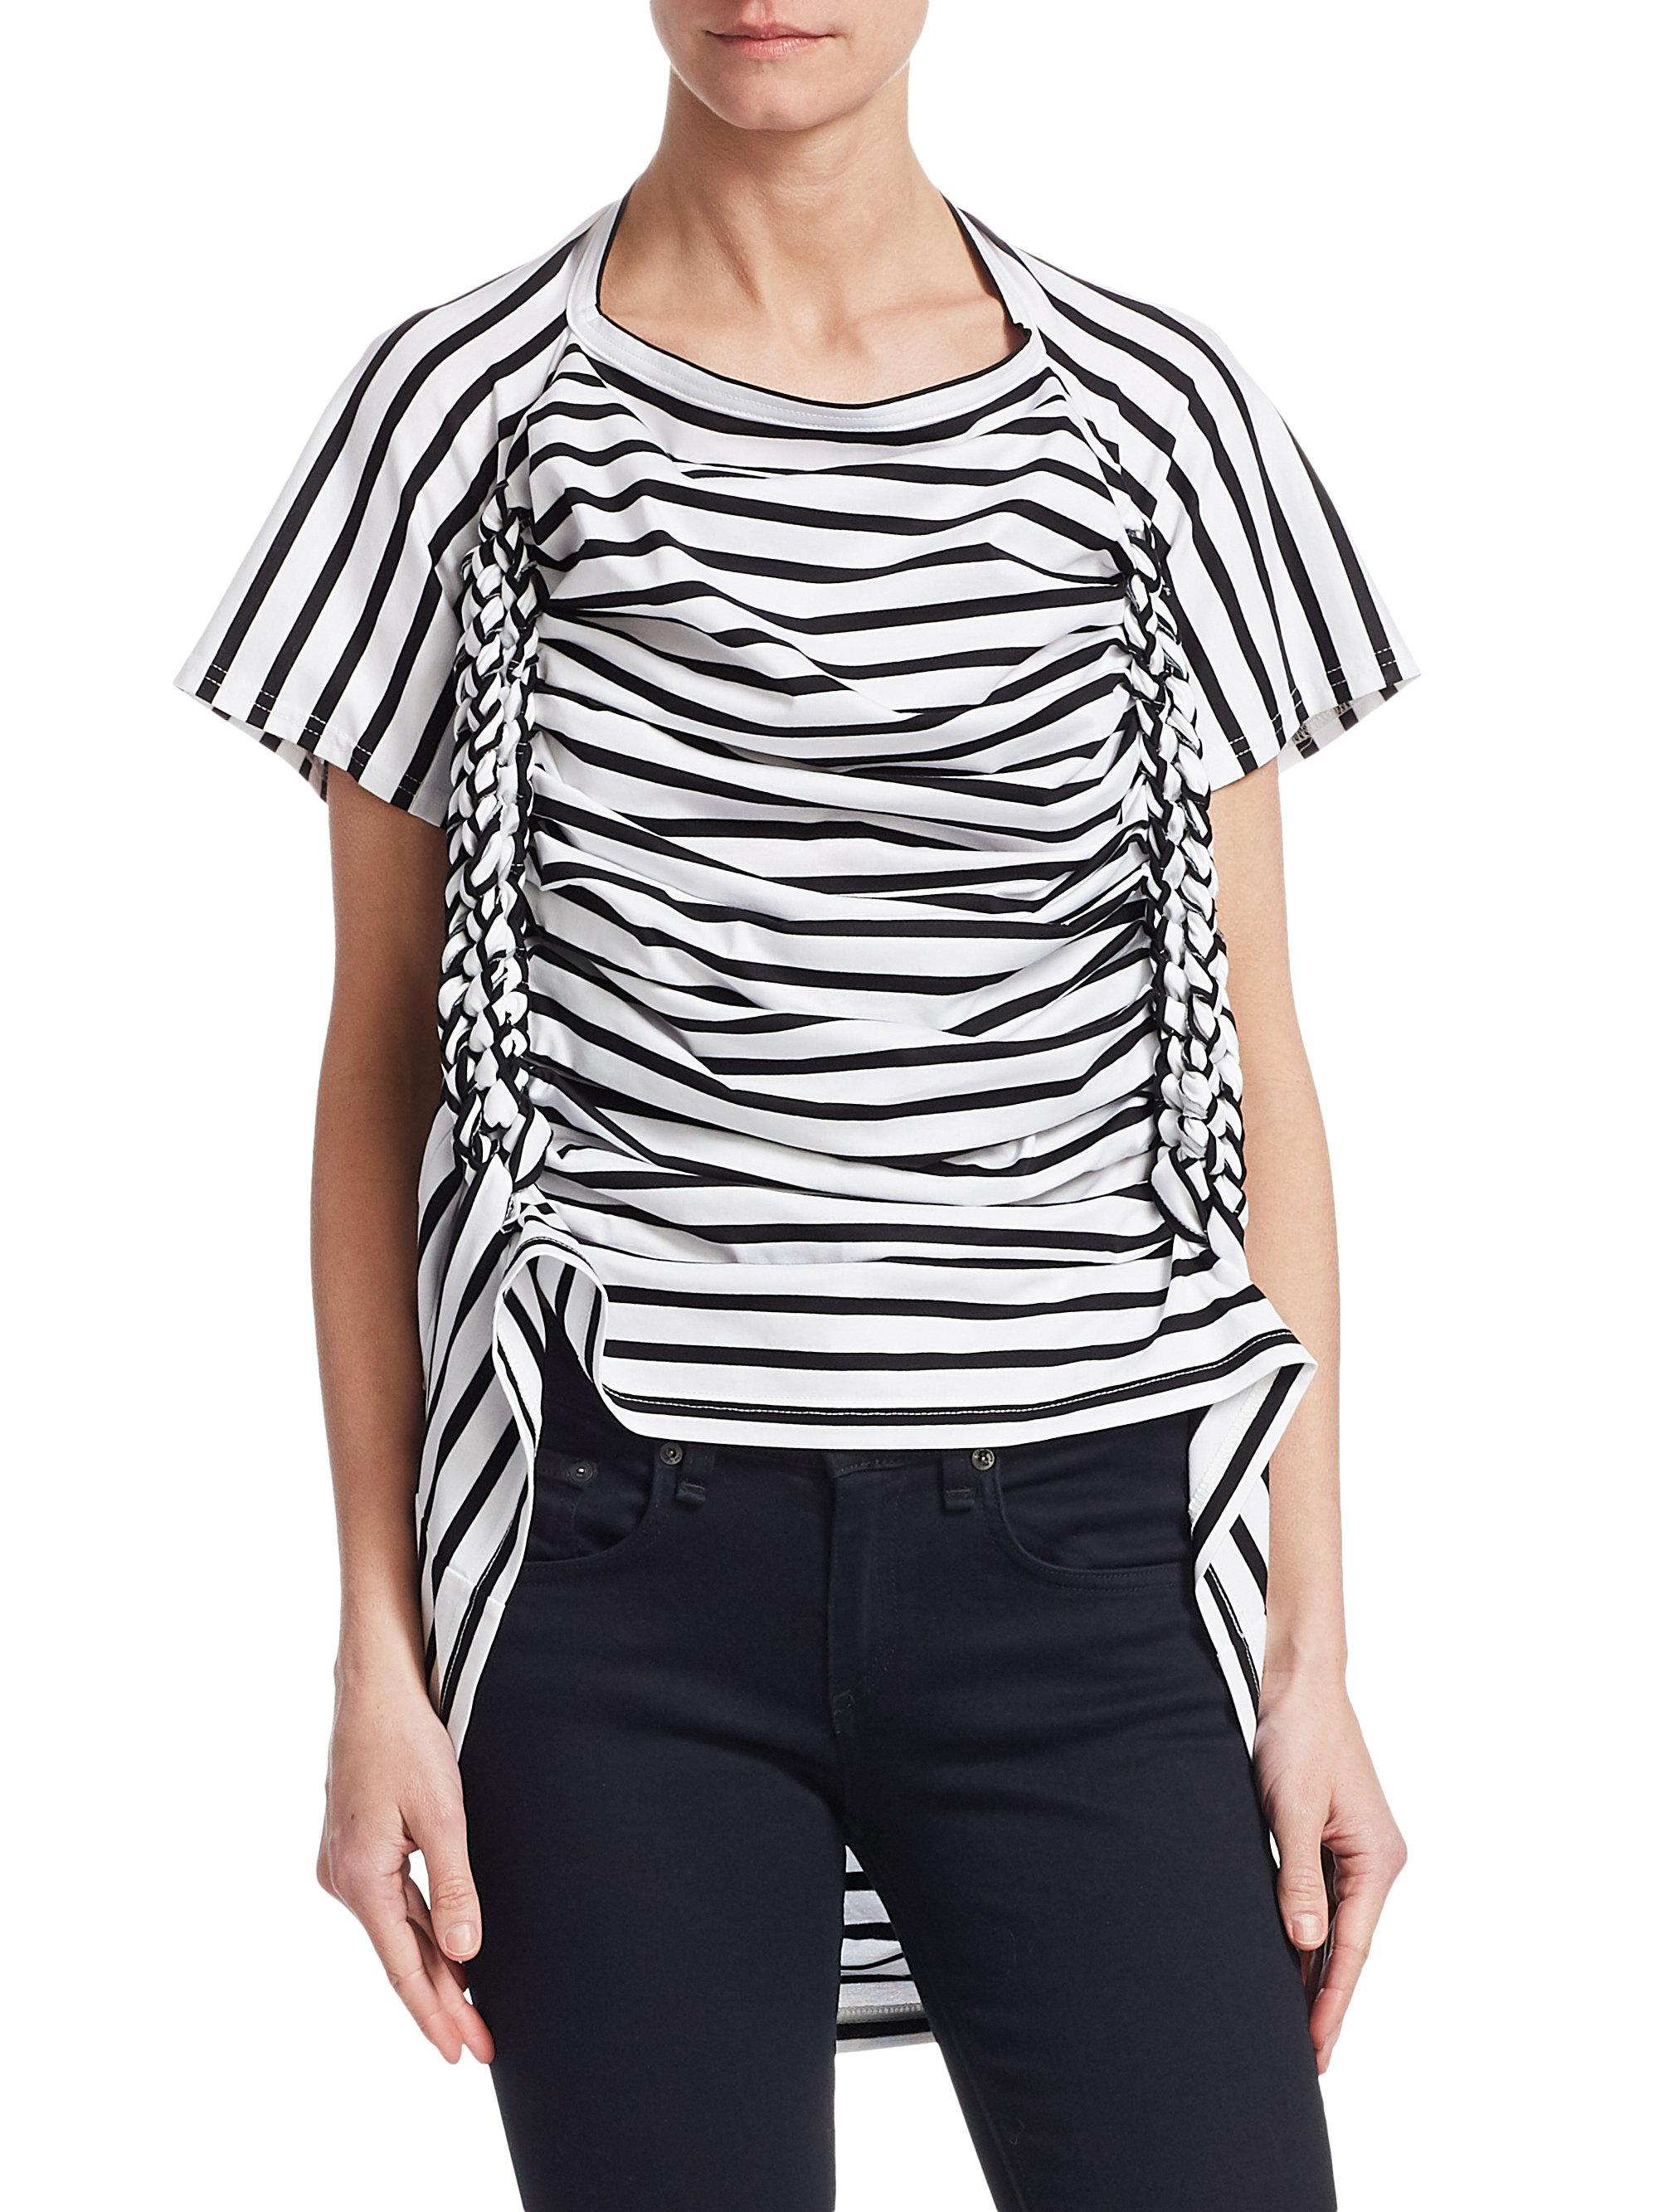 draped striped T-shirt - White Junya Watanabe Cheap For Nice Fake Sale Online Buy Cheap Latest Sast For Sale Huge Surprise Cheap Online TJErx5DXgH